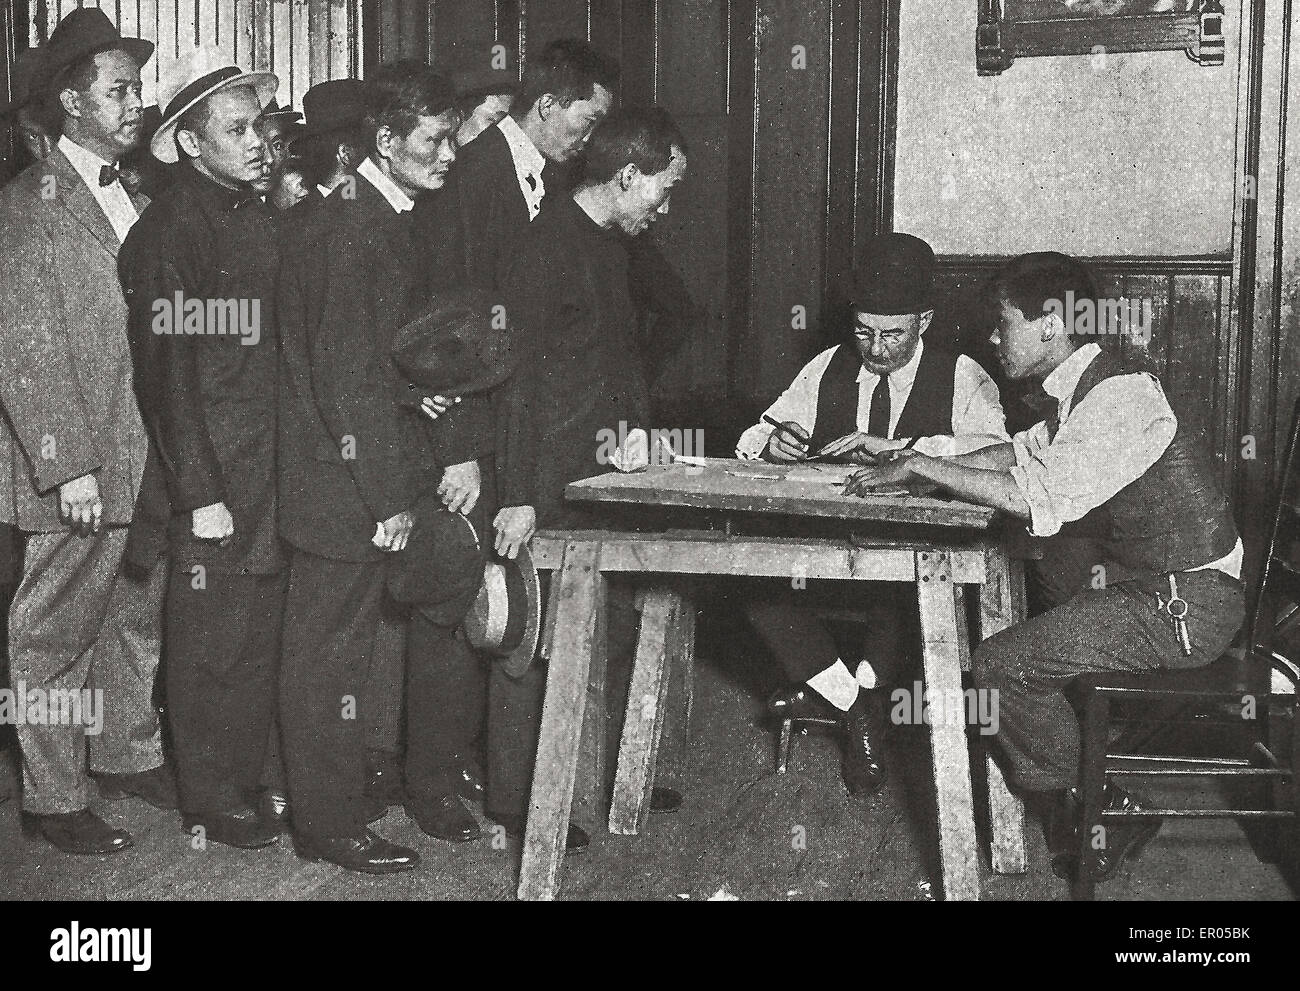 Draft registration in Chinatown, New York City - It would have been a hopeless task, but for the help of the keen - Stock Image